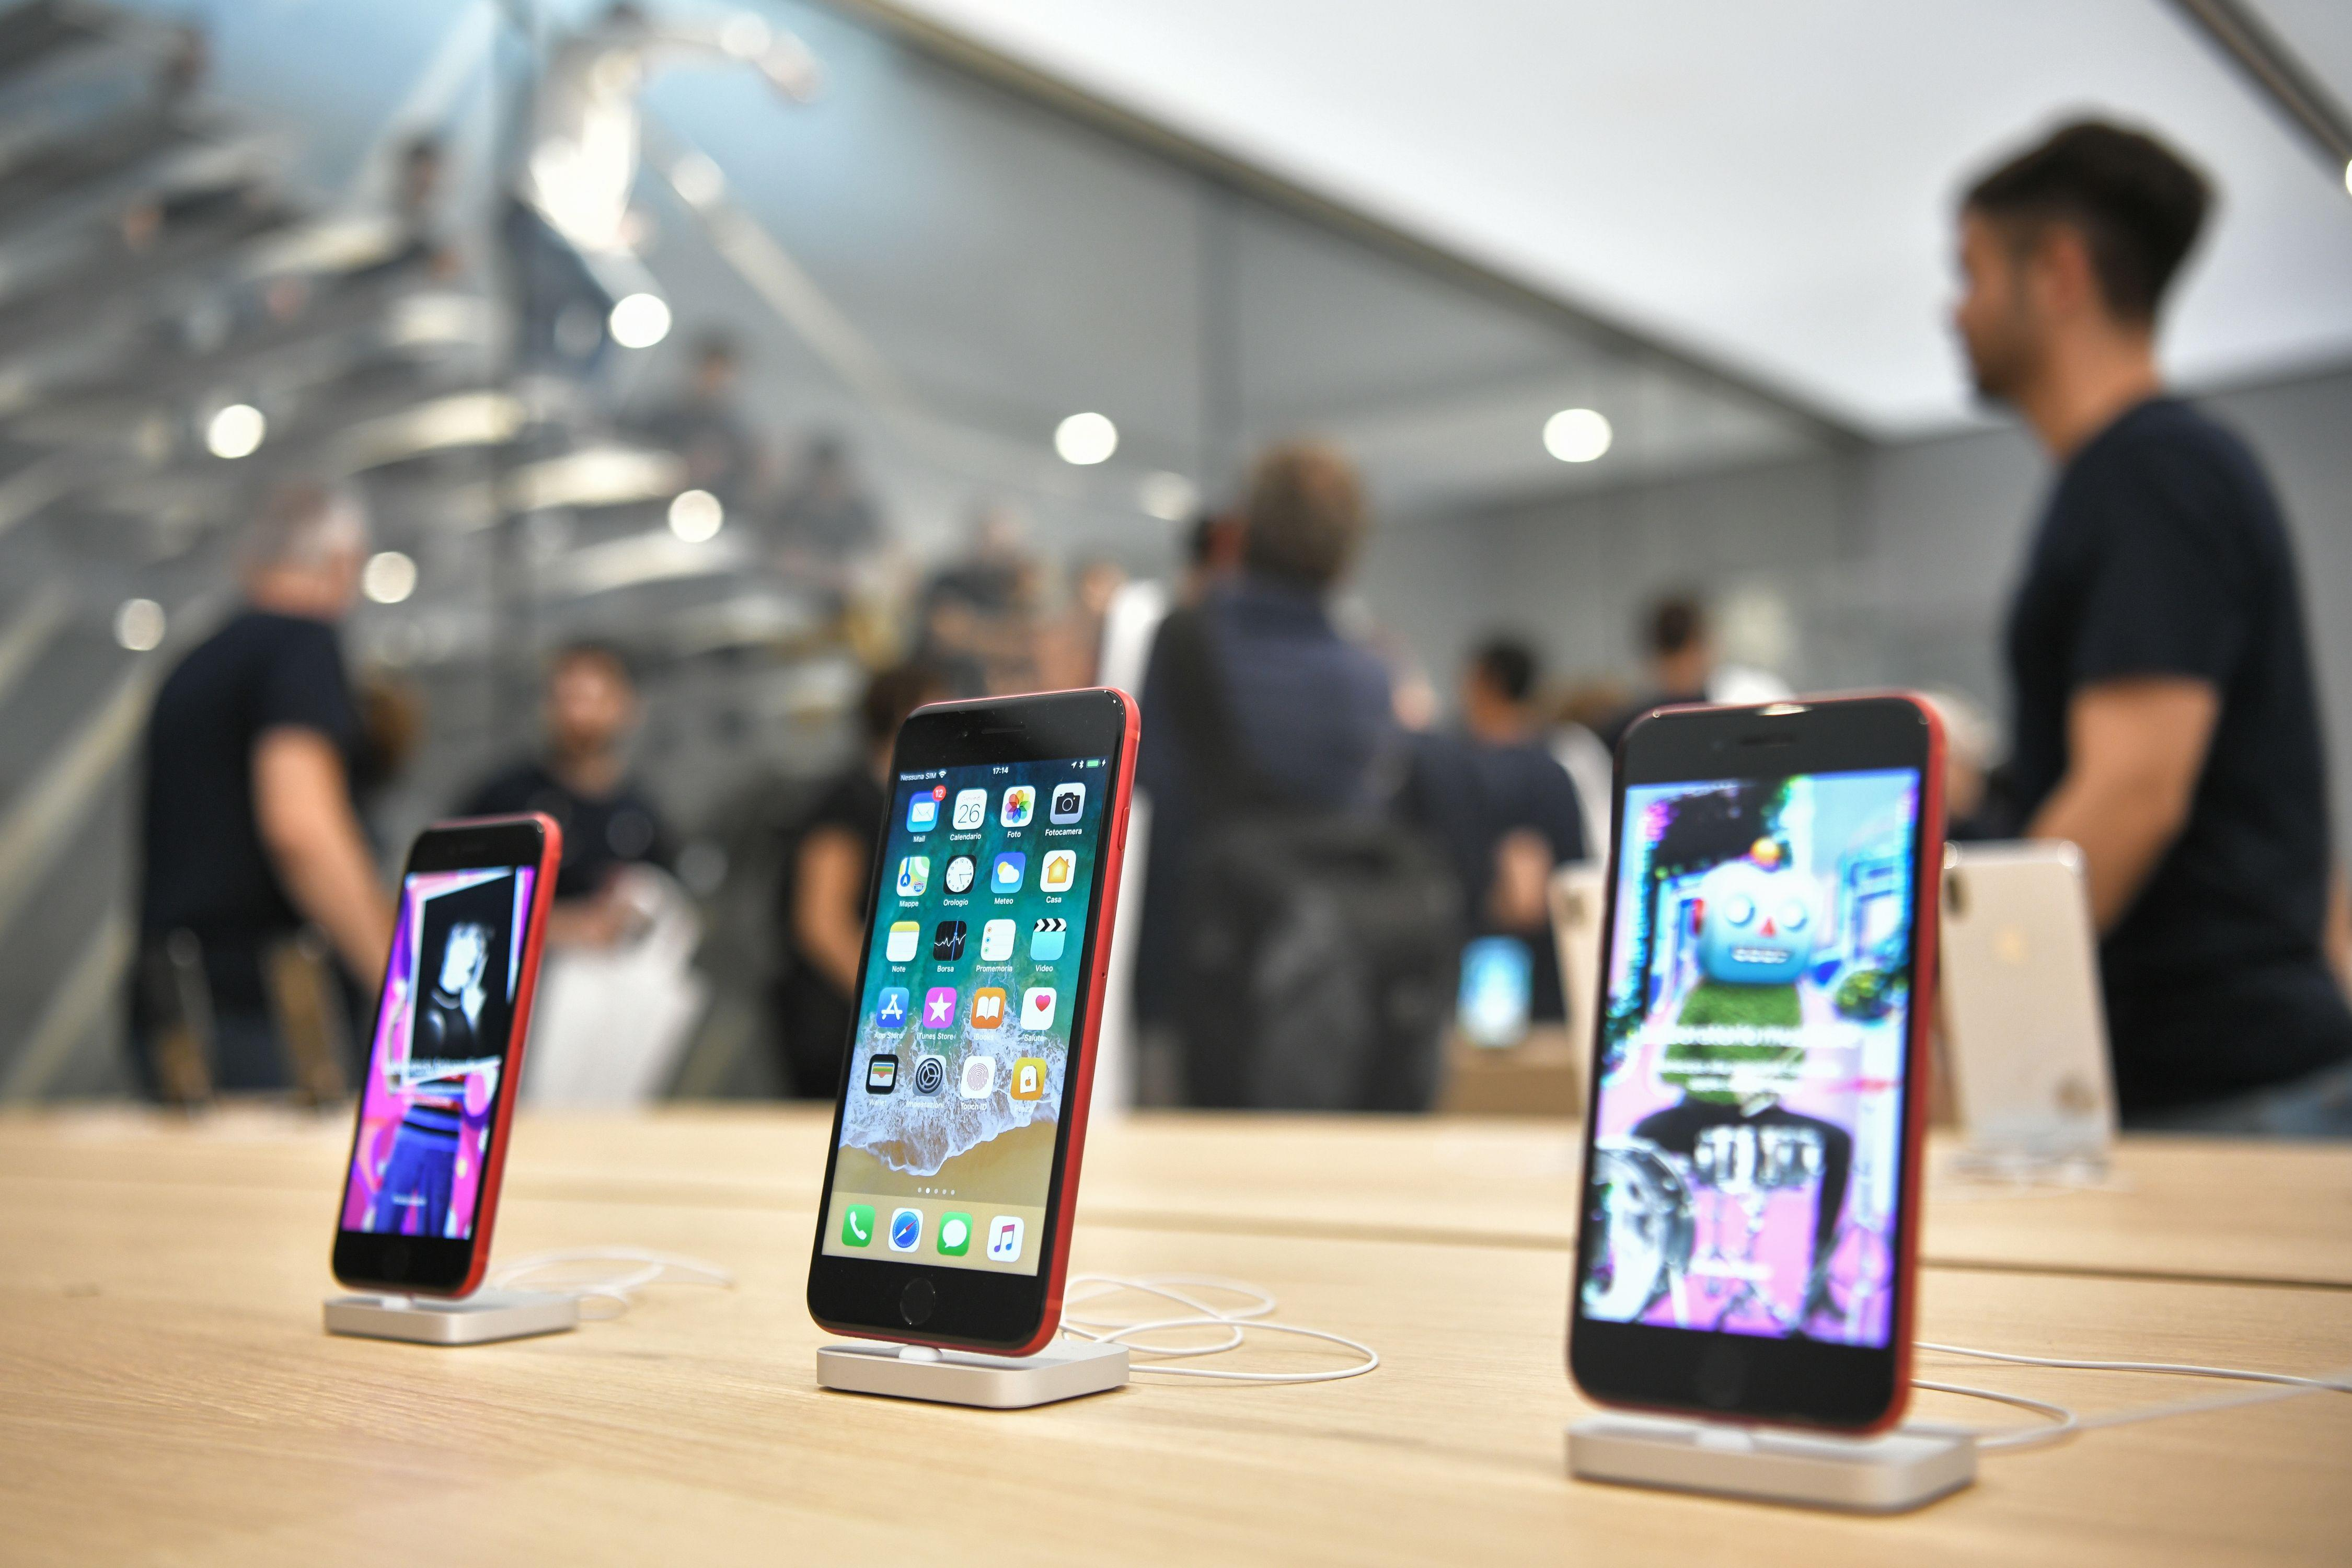 Calendario Huawei.Huawei Just Passed Apple In Smartphone Sales For The First